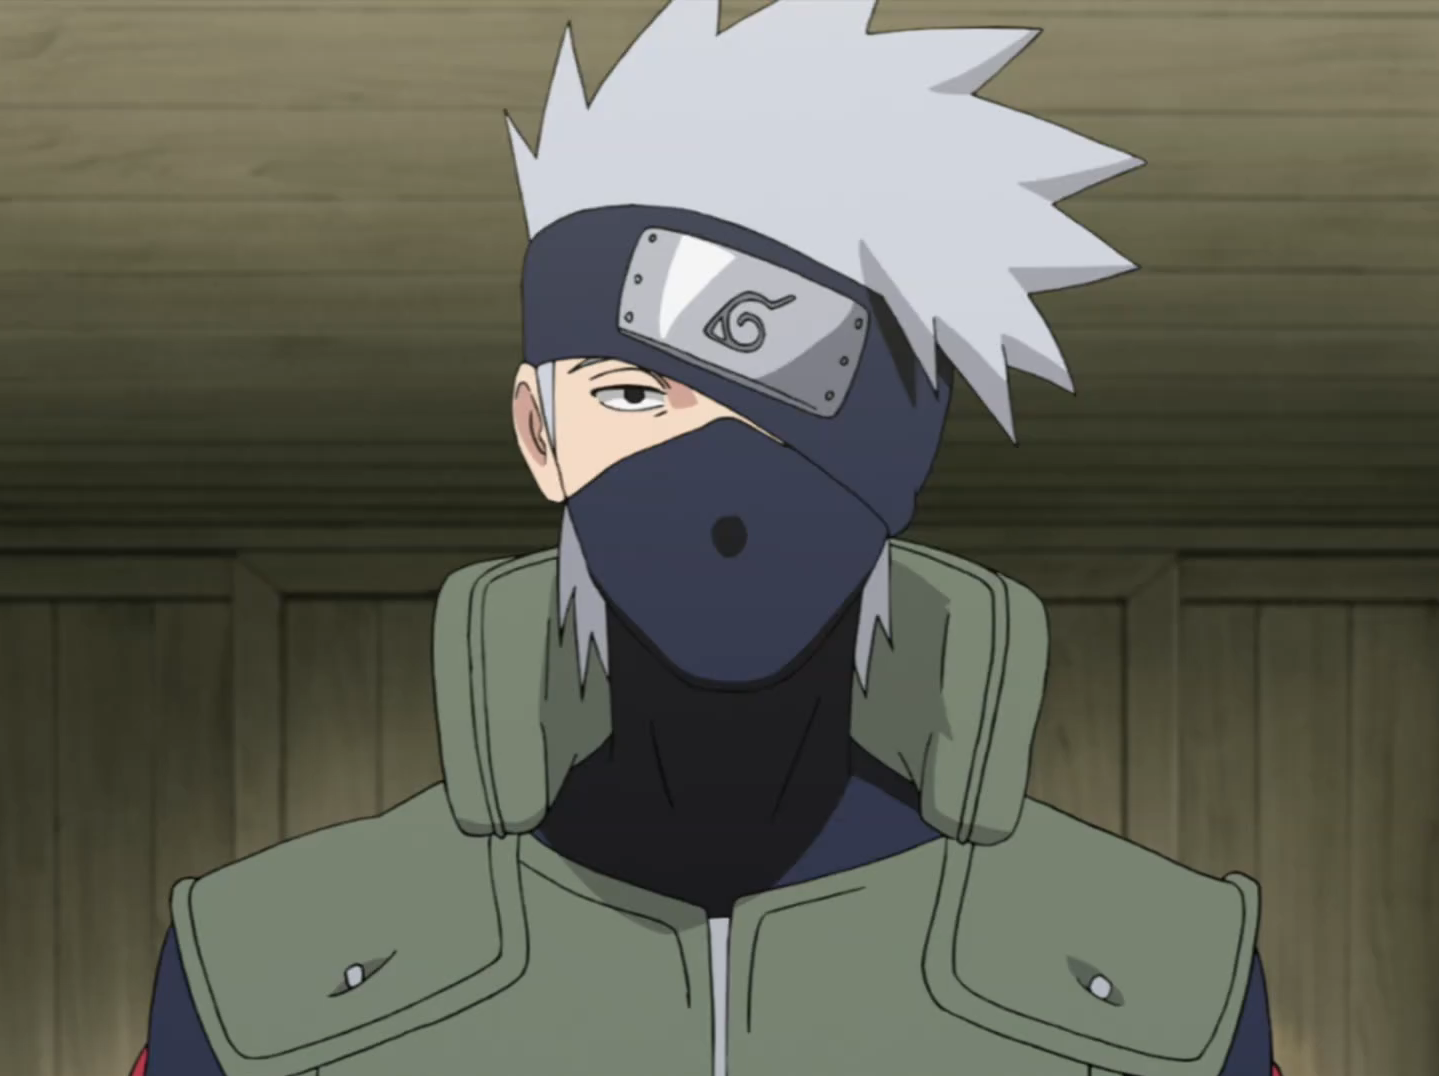 Kakashi Hatake | Narutopedia | FANDOM powered by Wikia